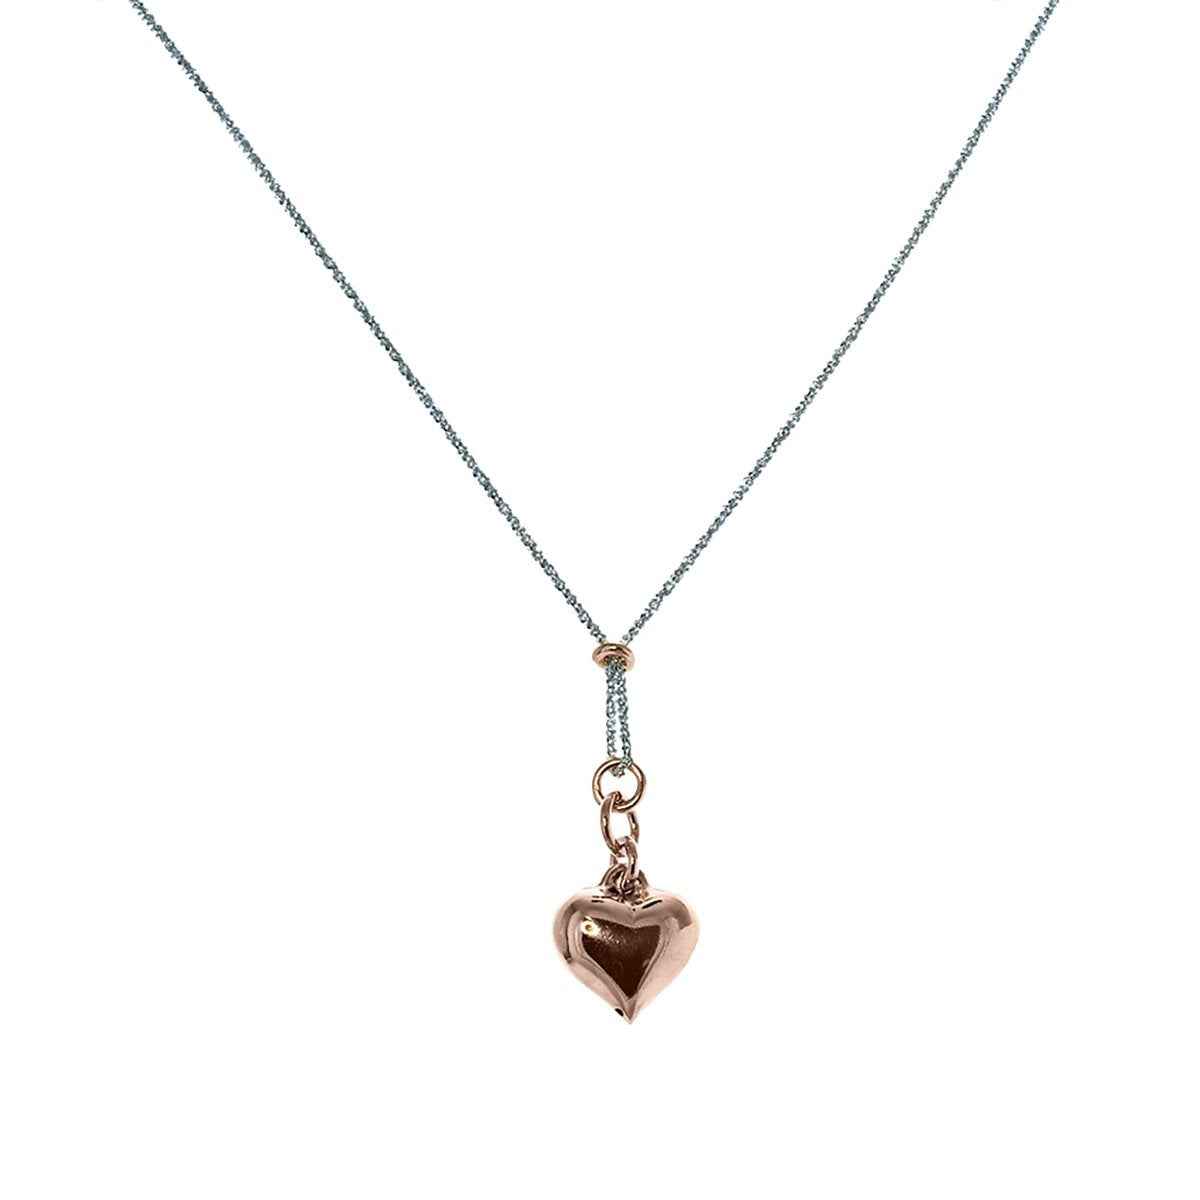 Private Collection Heart Necklace